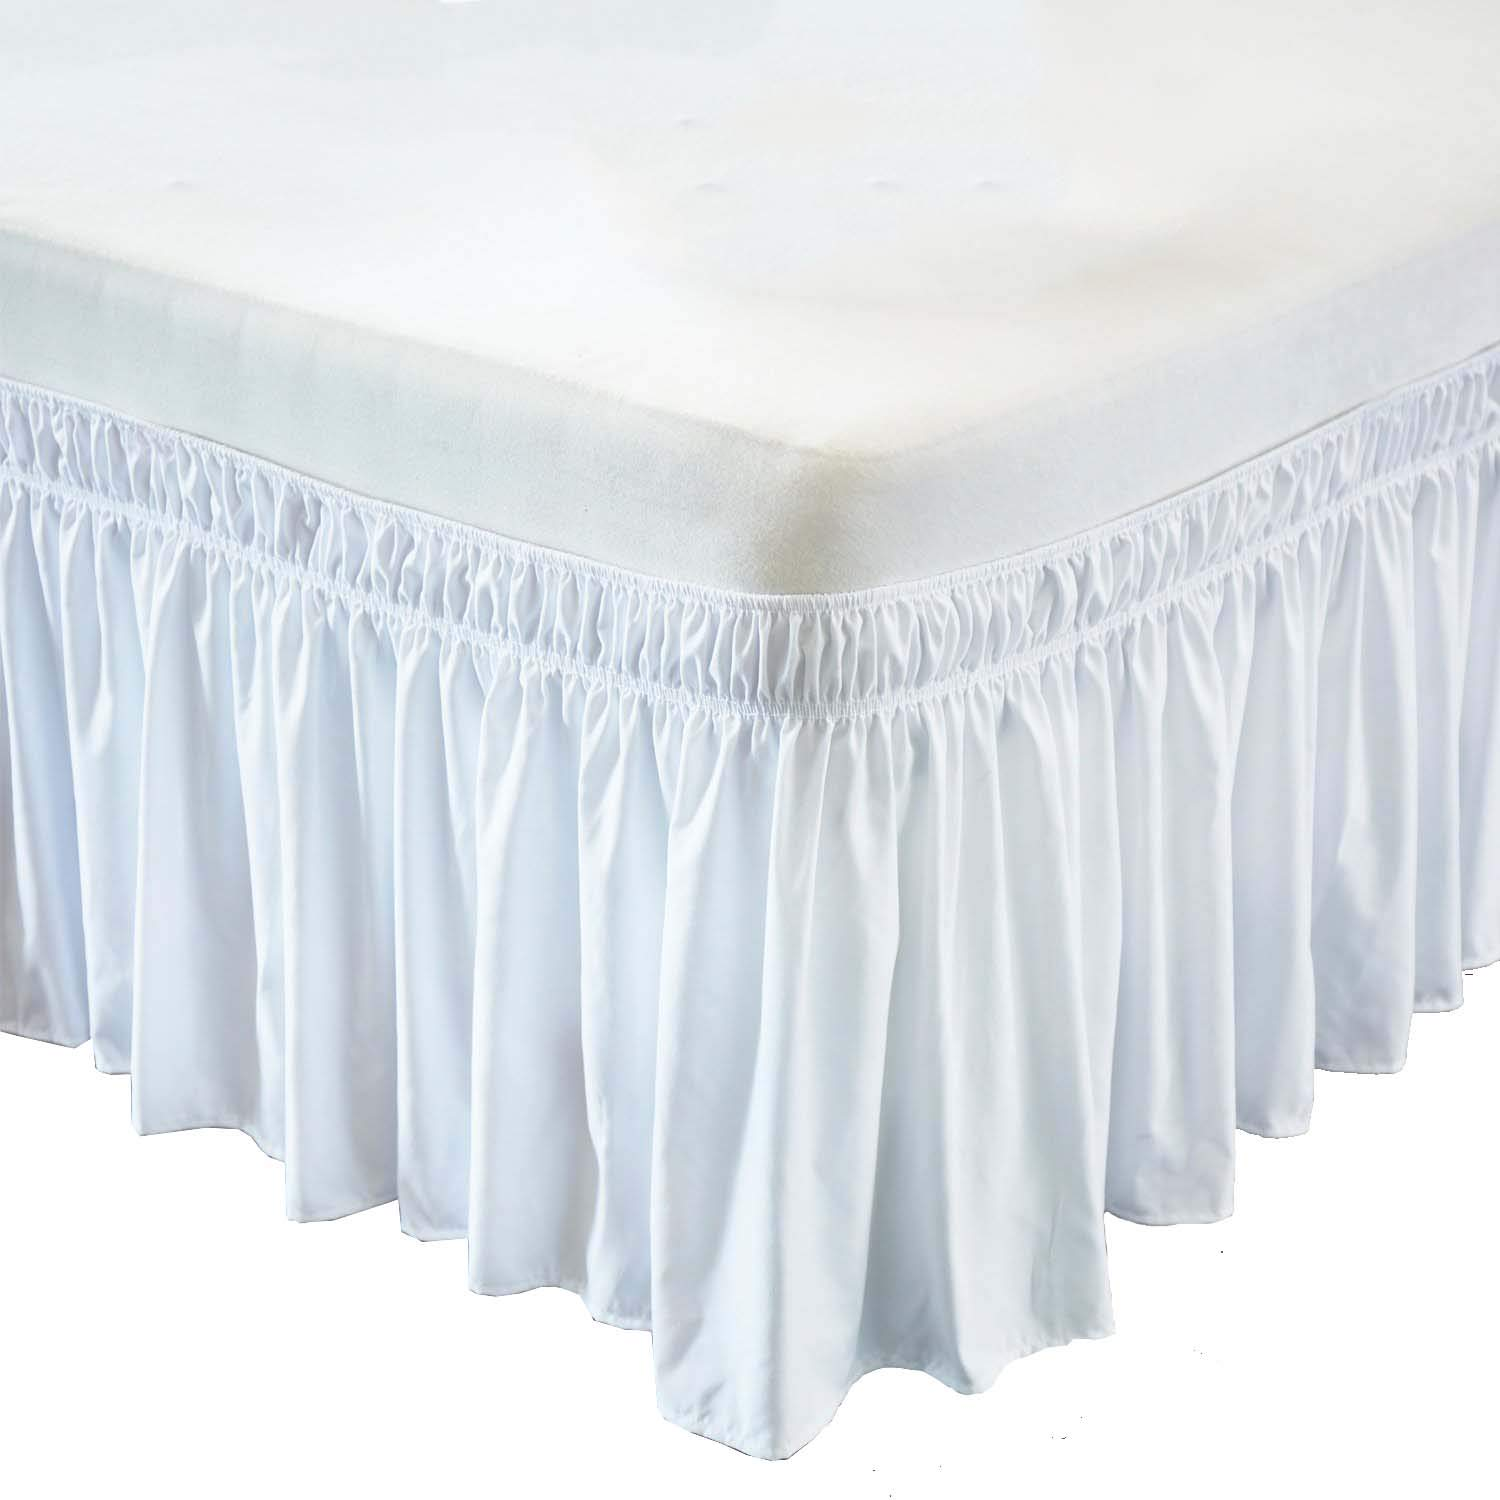 Wrap Around Bed Skirt- 24 Inch Drop Length Style Easy Fit Elastic Bed Ruffles Bed-Skirt Wrinkle Free Bed Skirt - White, King in All Bed Sizes and Colors